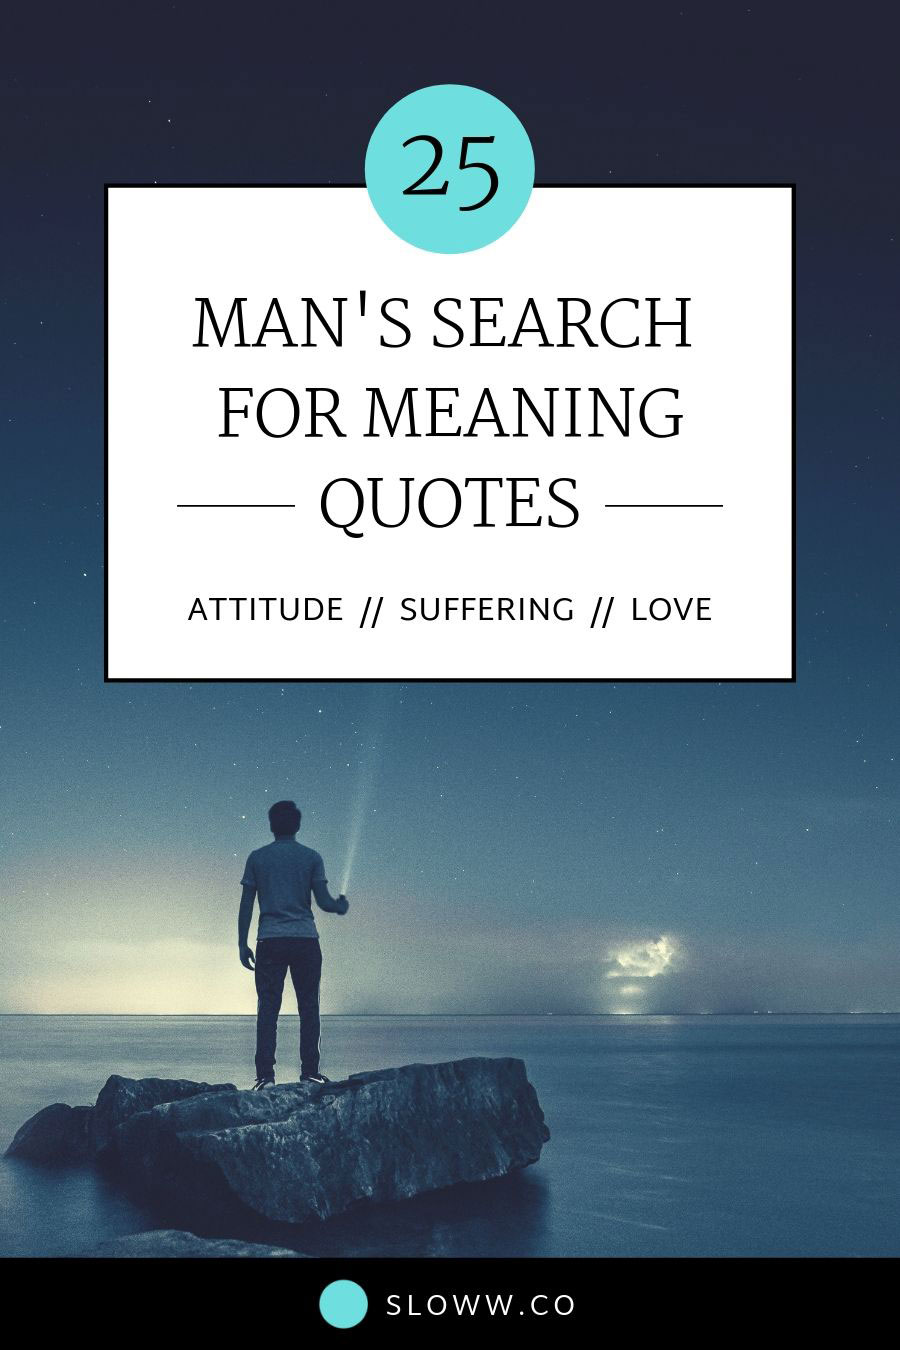 Sloww Man's Search for Meaning Quotes